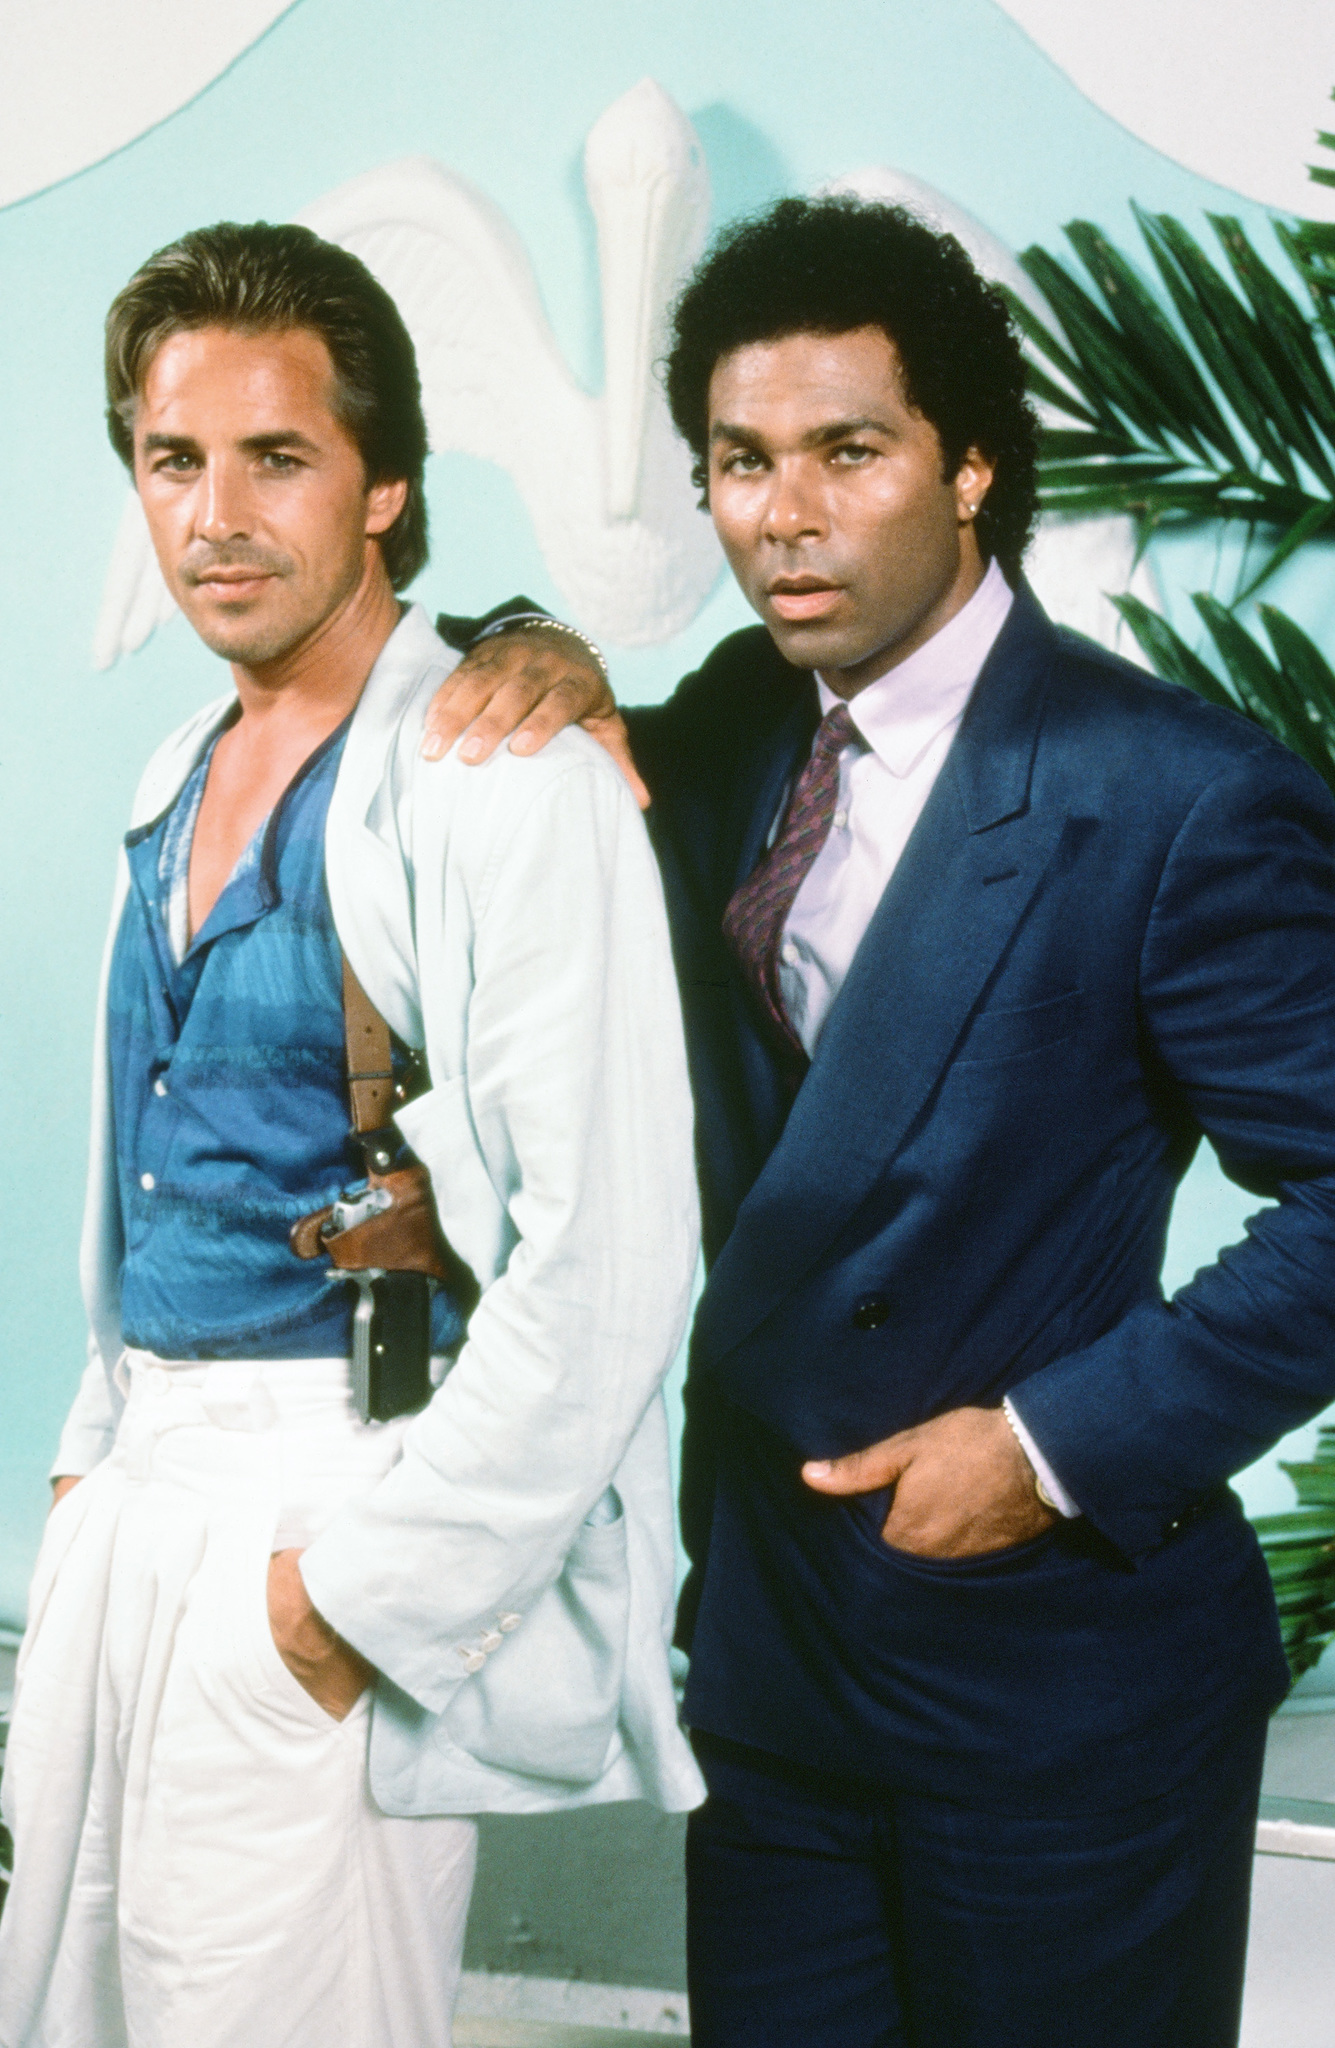 Miami Vice Tv Series 1984 1989 Photo Gallery Imdb Read more about anwar zayden wiki, age, net worth, family, bio, girlfriend, married, wife, age, children son daughter, parents father mother, instagram. https www imdb com title tt0086759 mediaindex